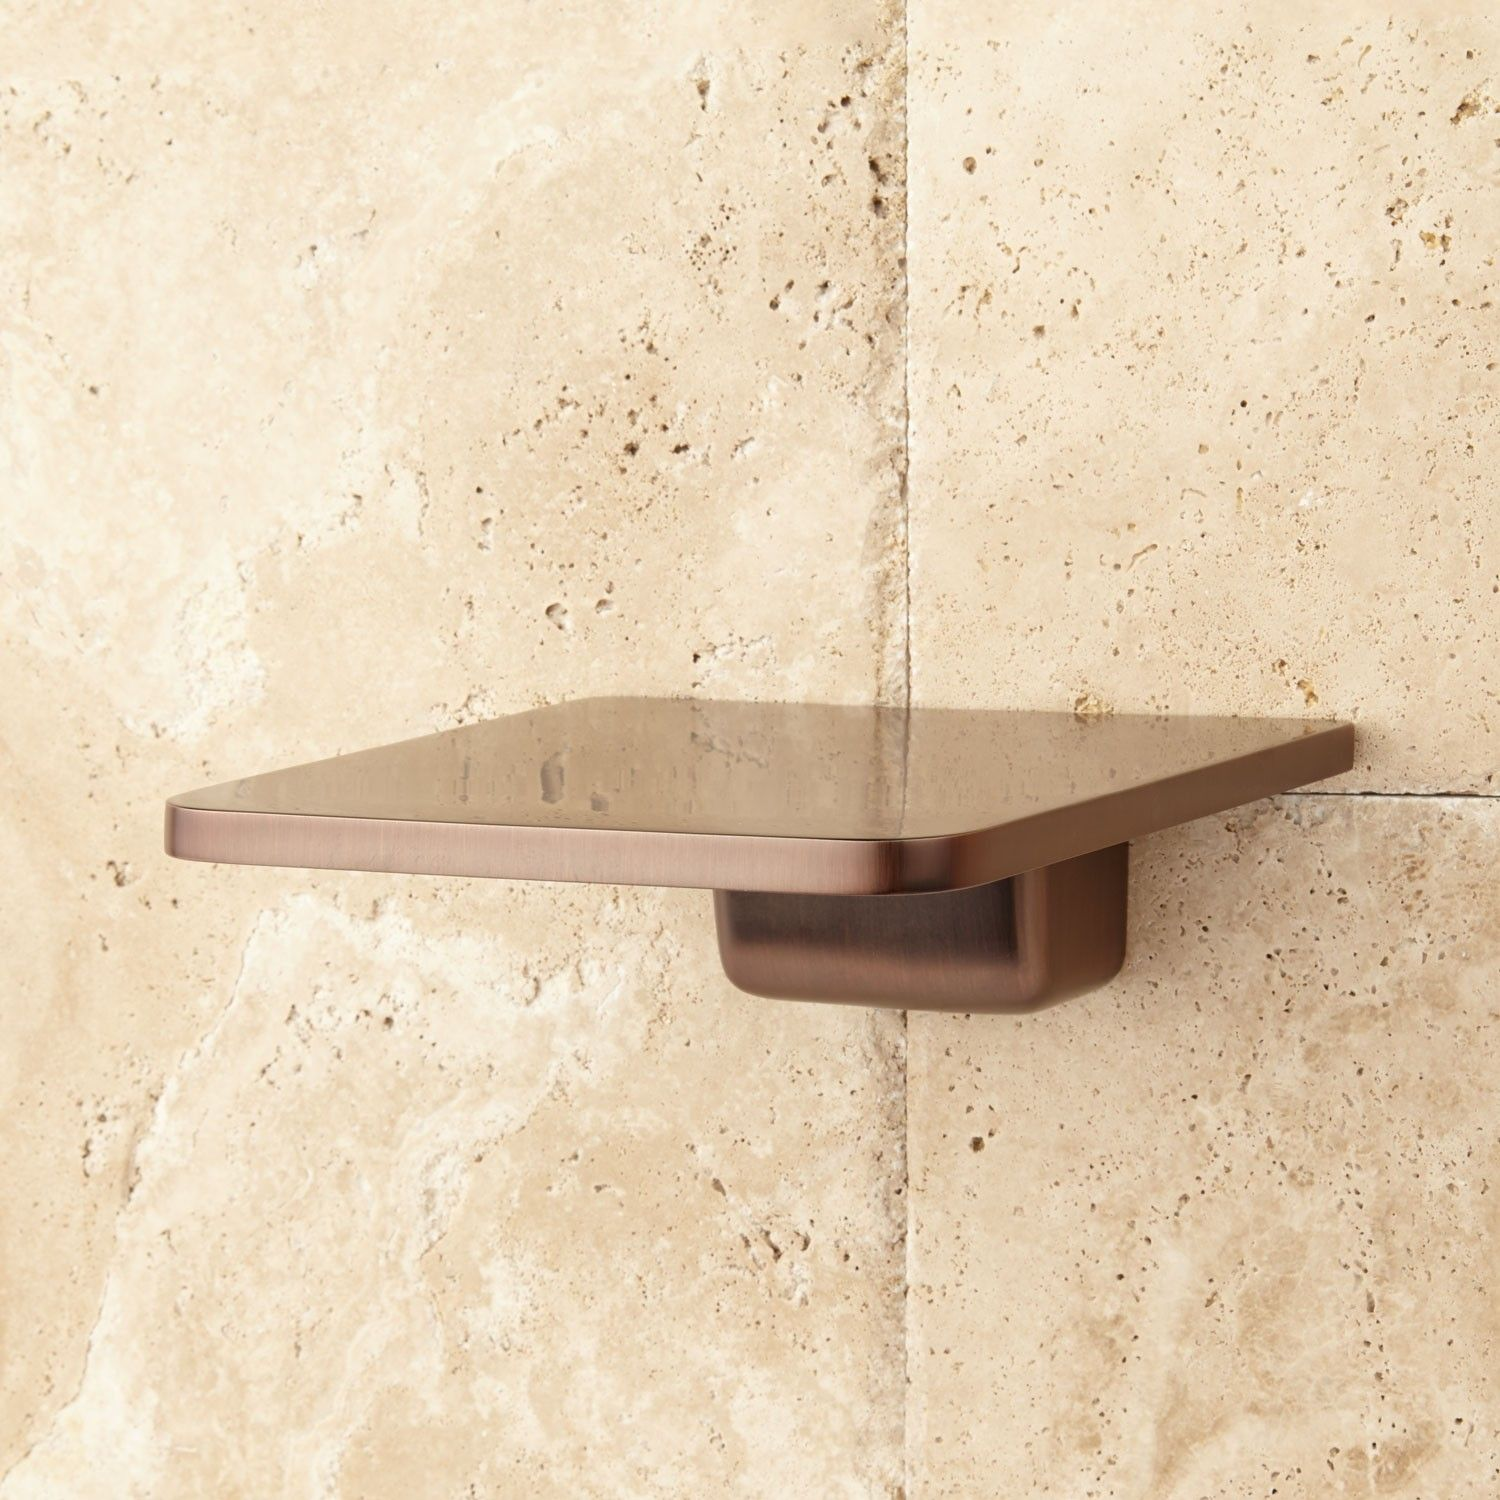 Knox Waterfall Tub Spout   Tubs, Solid brass and Faucet